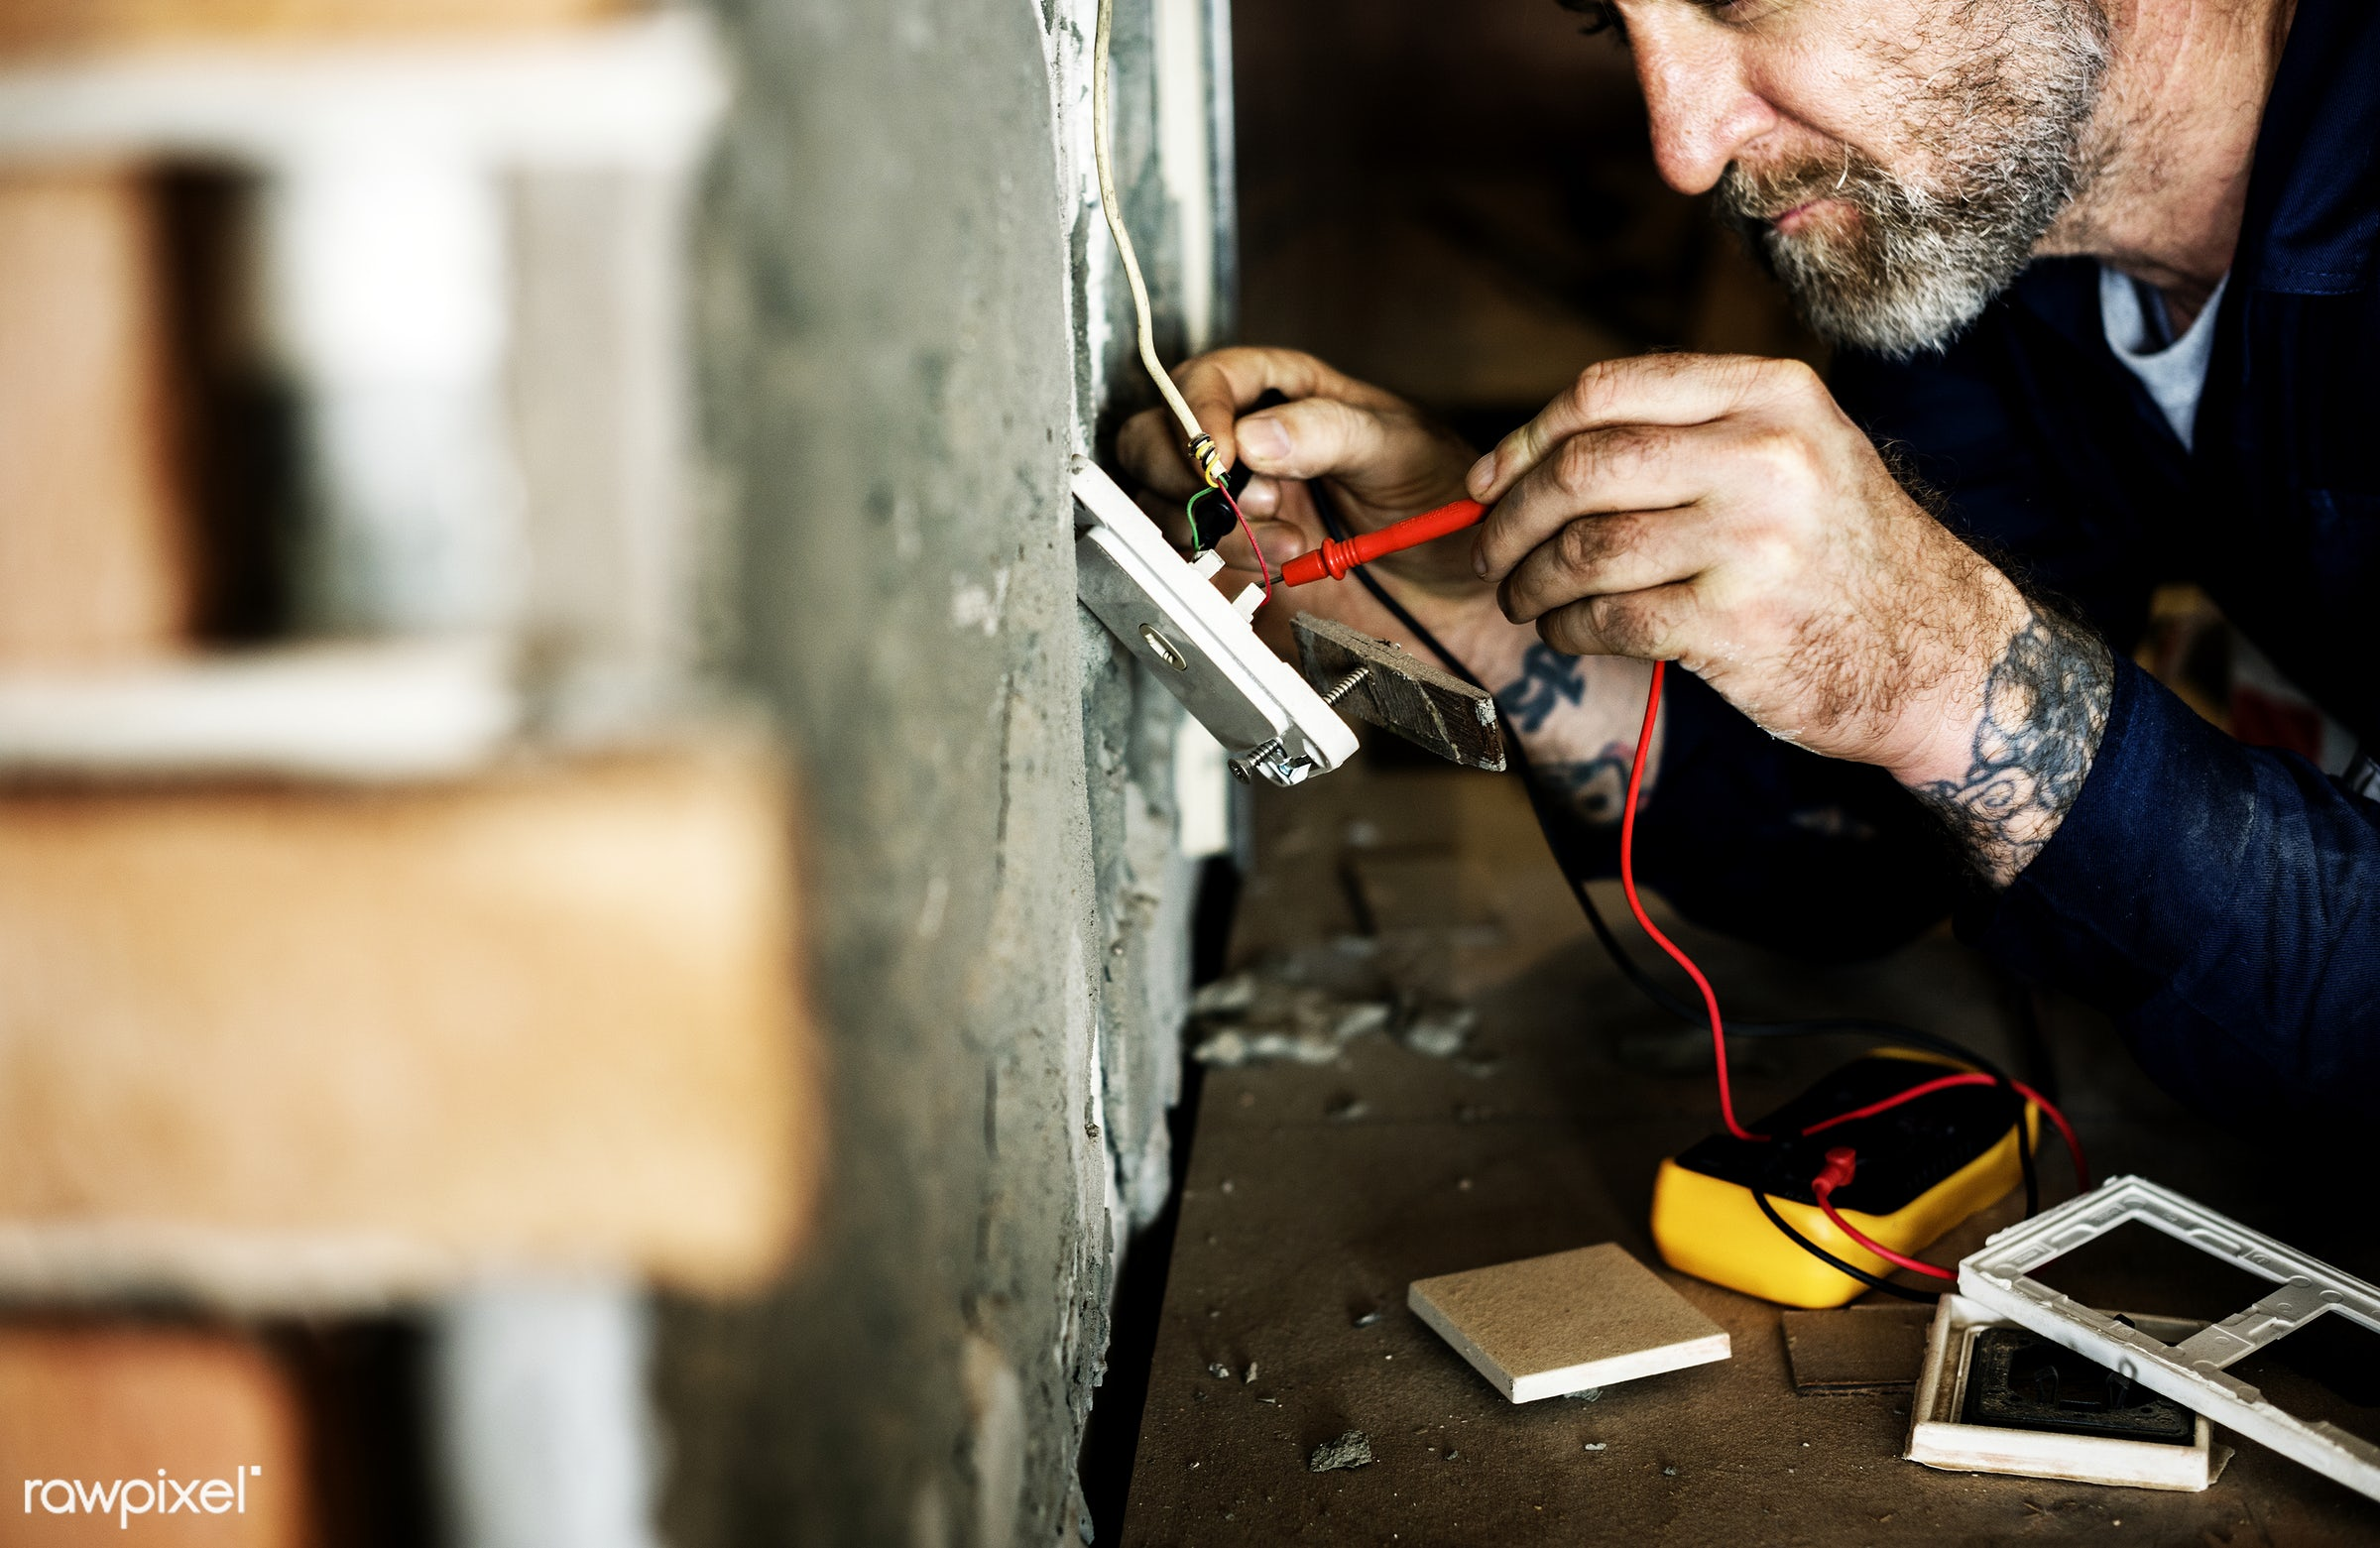 craft, wood, tool, equipment, house, technical, installation, handyman, repair, industry, renovation, work, timber,...